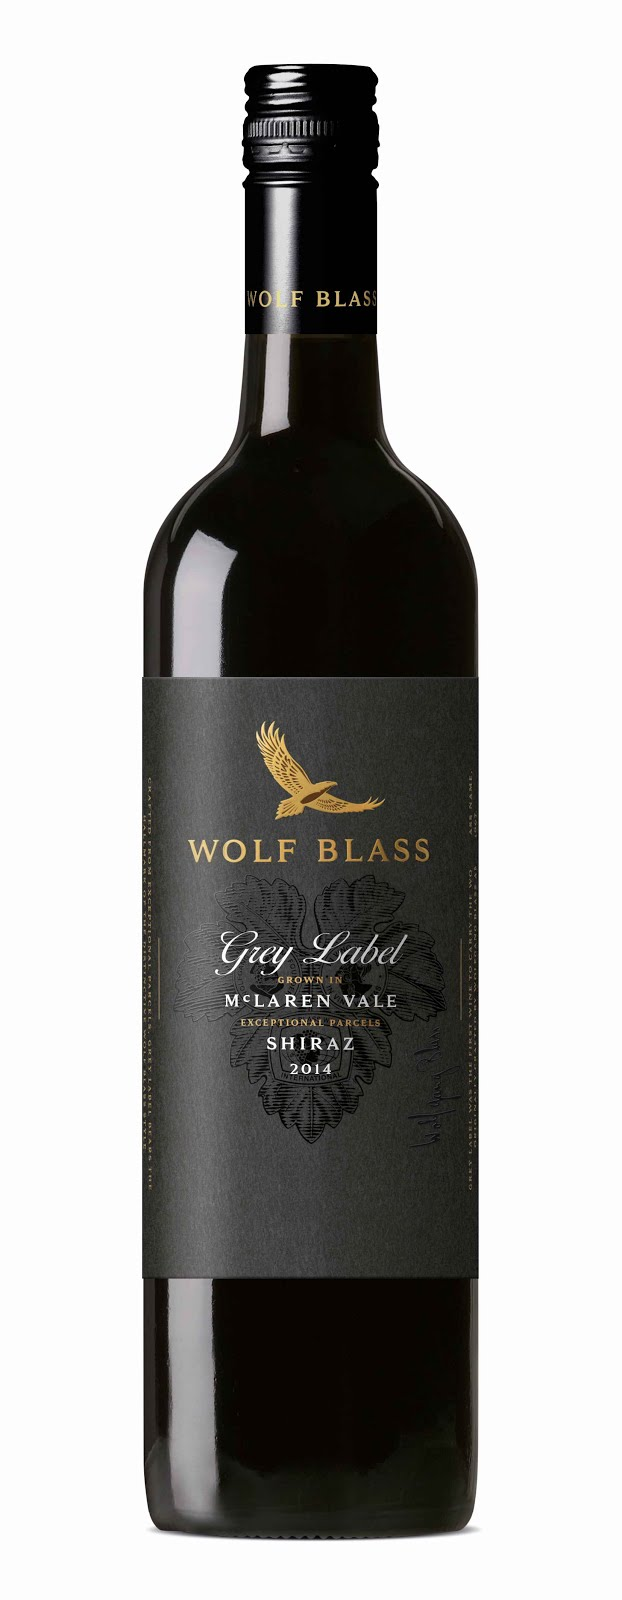 It's just a picture of Gratifying Wolf Blass Grey Label Cabernet Sauvignon